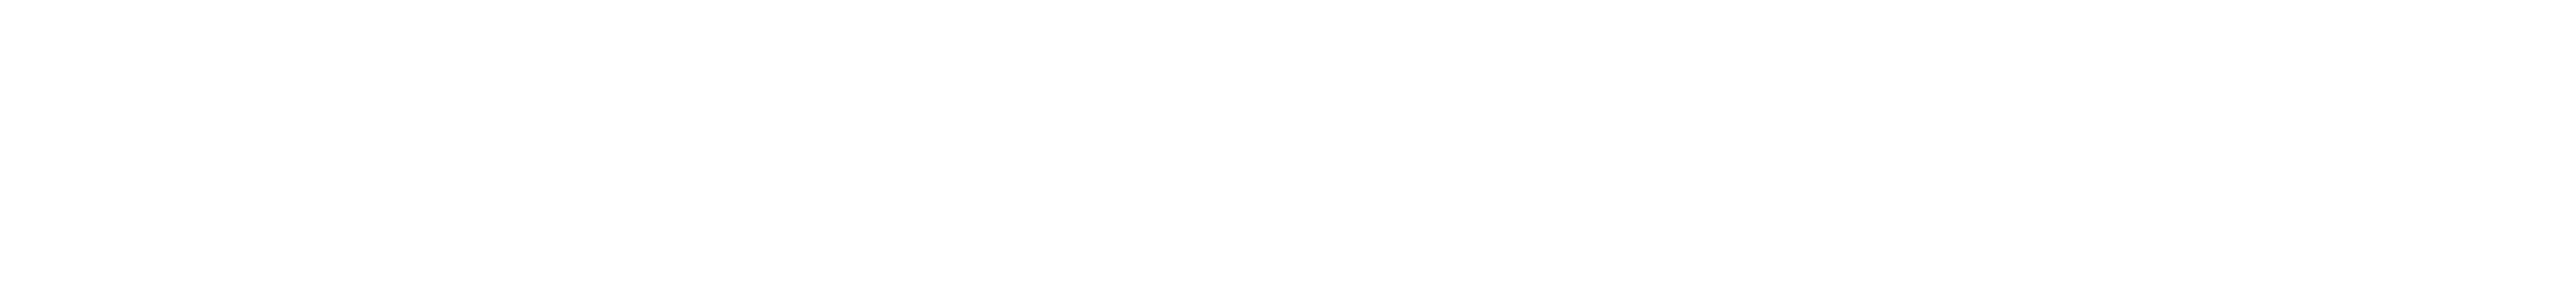 obsession woman's fashion Logo